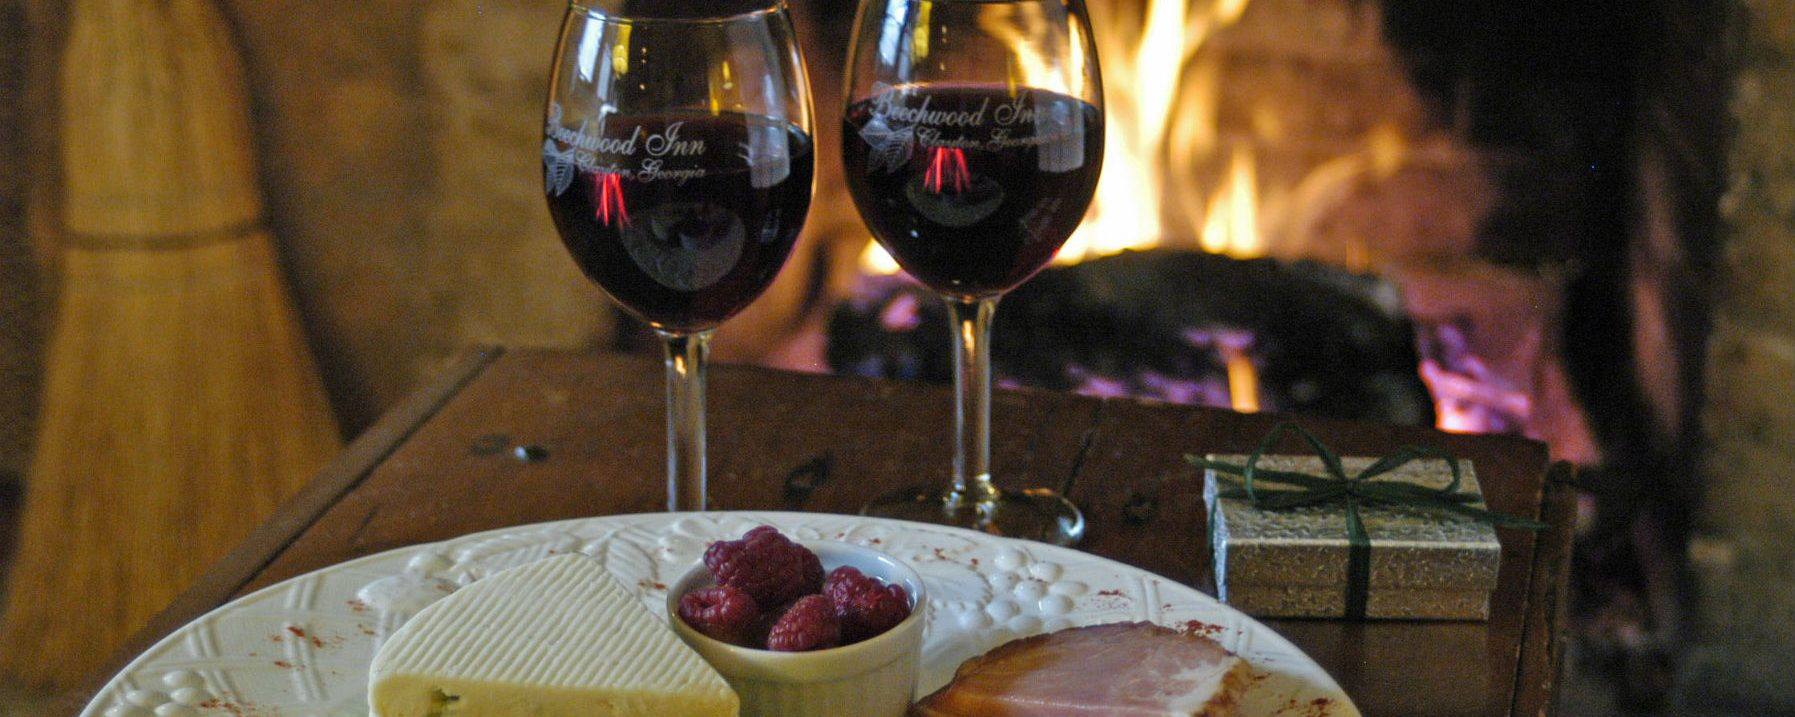 Image of Wine and Cheese at Beechwood Inn in front of a fire, warm and cozy